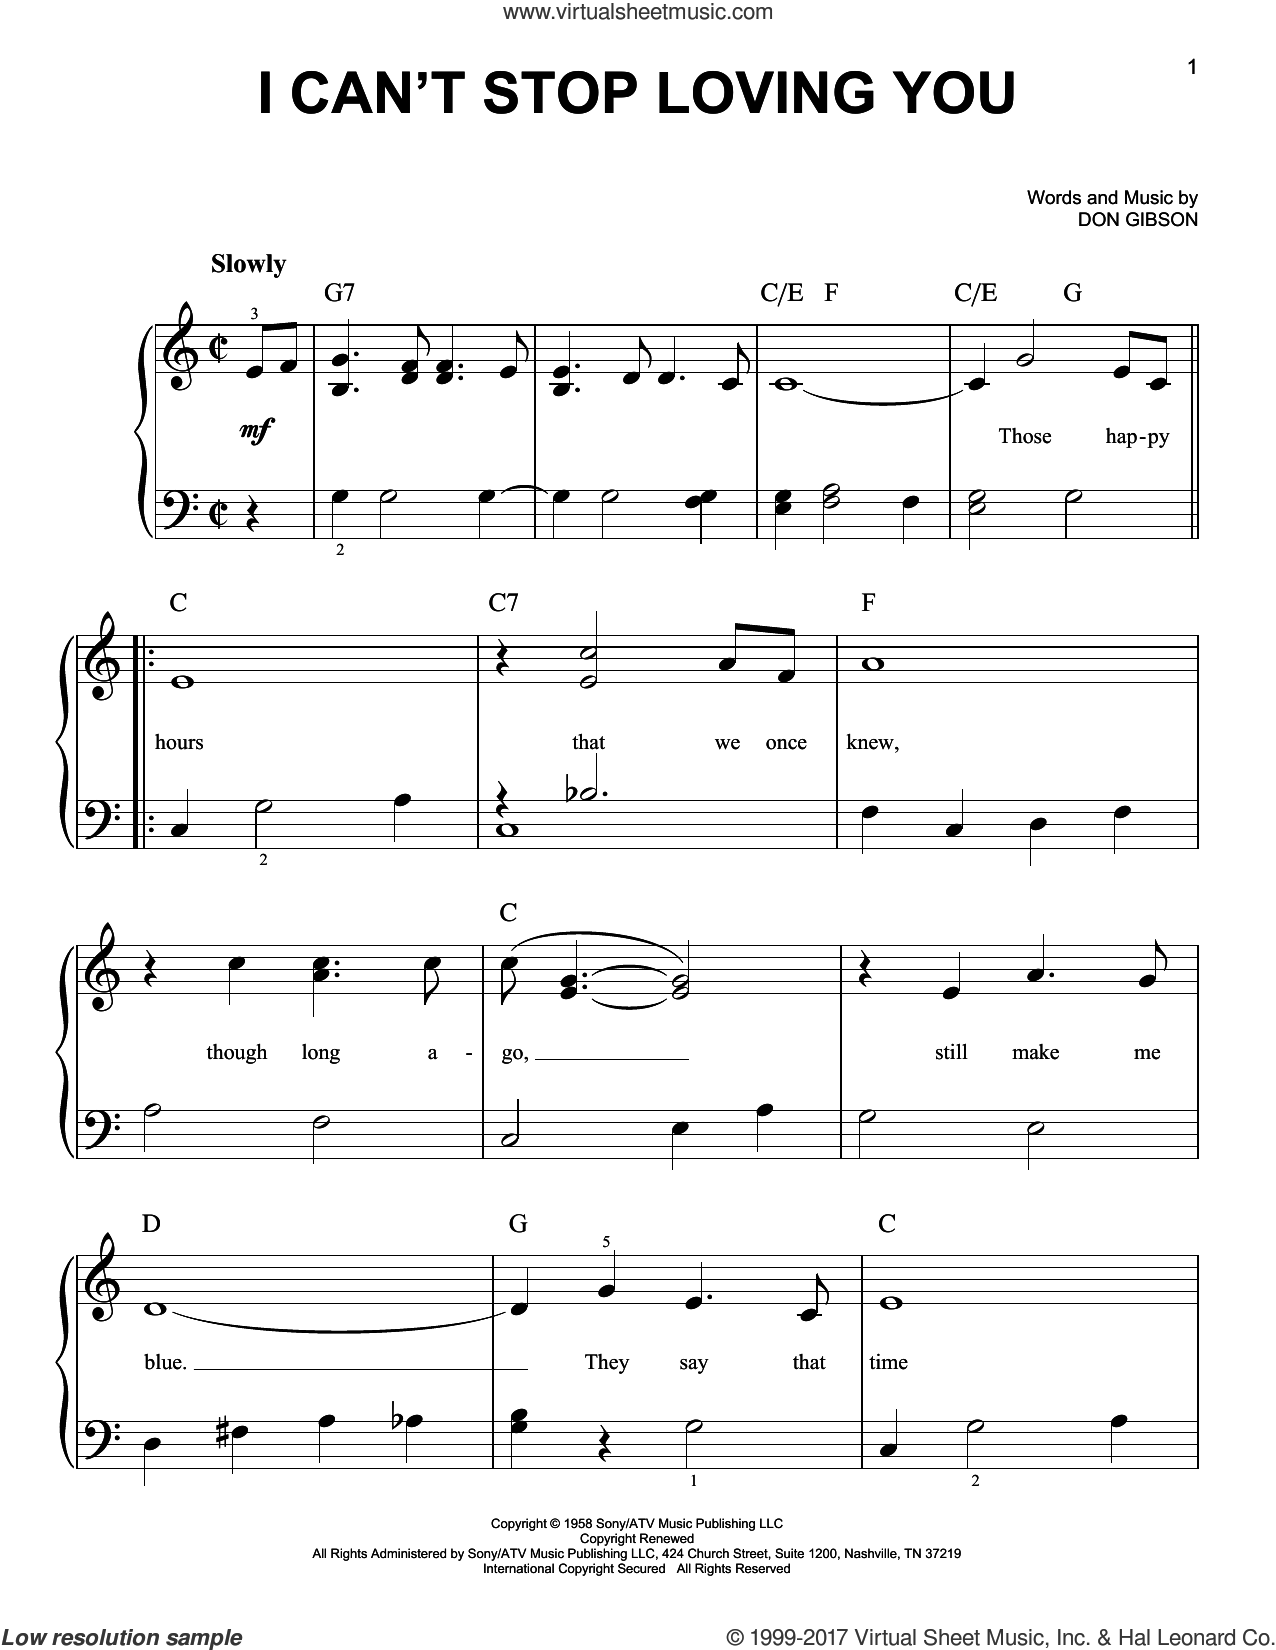 I Can't Stop Loving You sheet music for piano solo by Don Gibson, Conway Twitty, Elvis Presley, Kitty Wells and Ray Charles, easy. Score Image Preview.